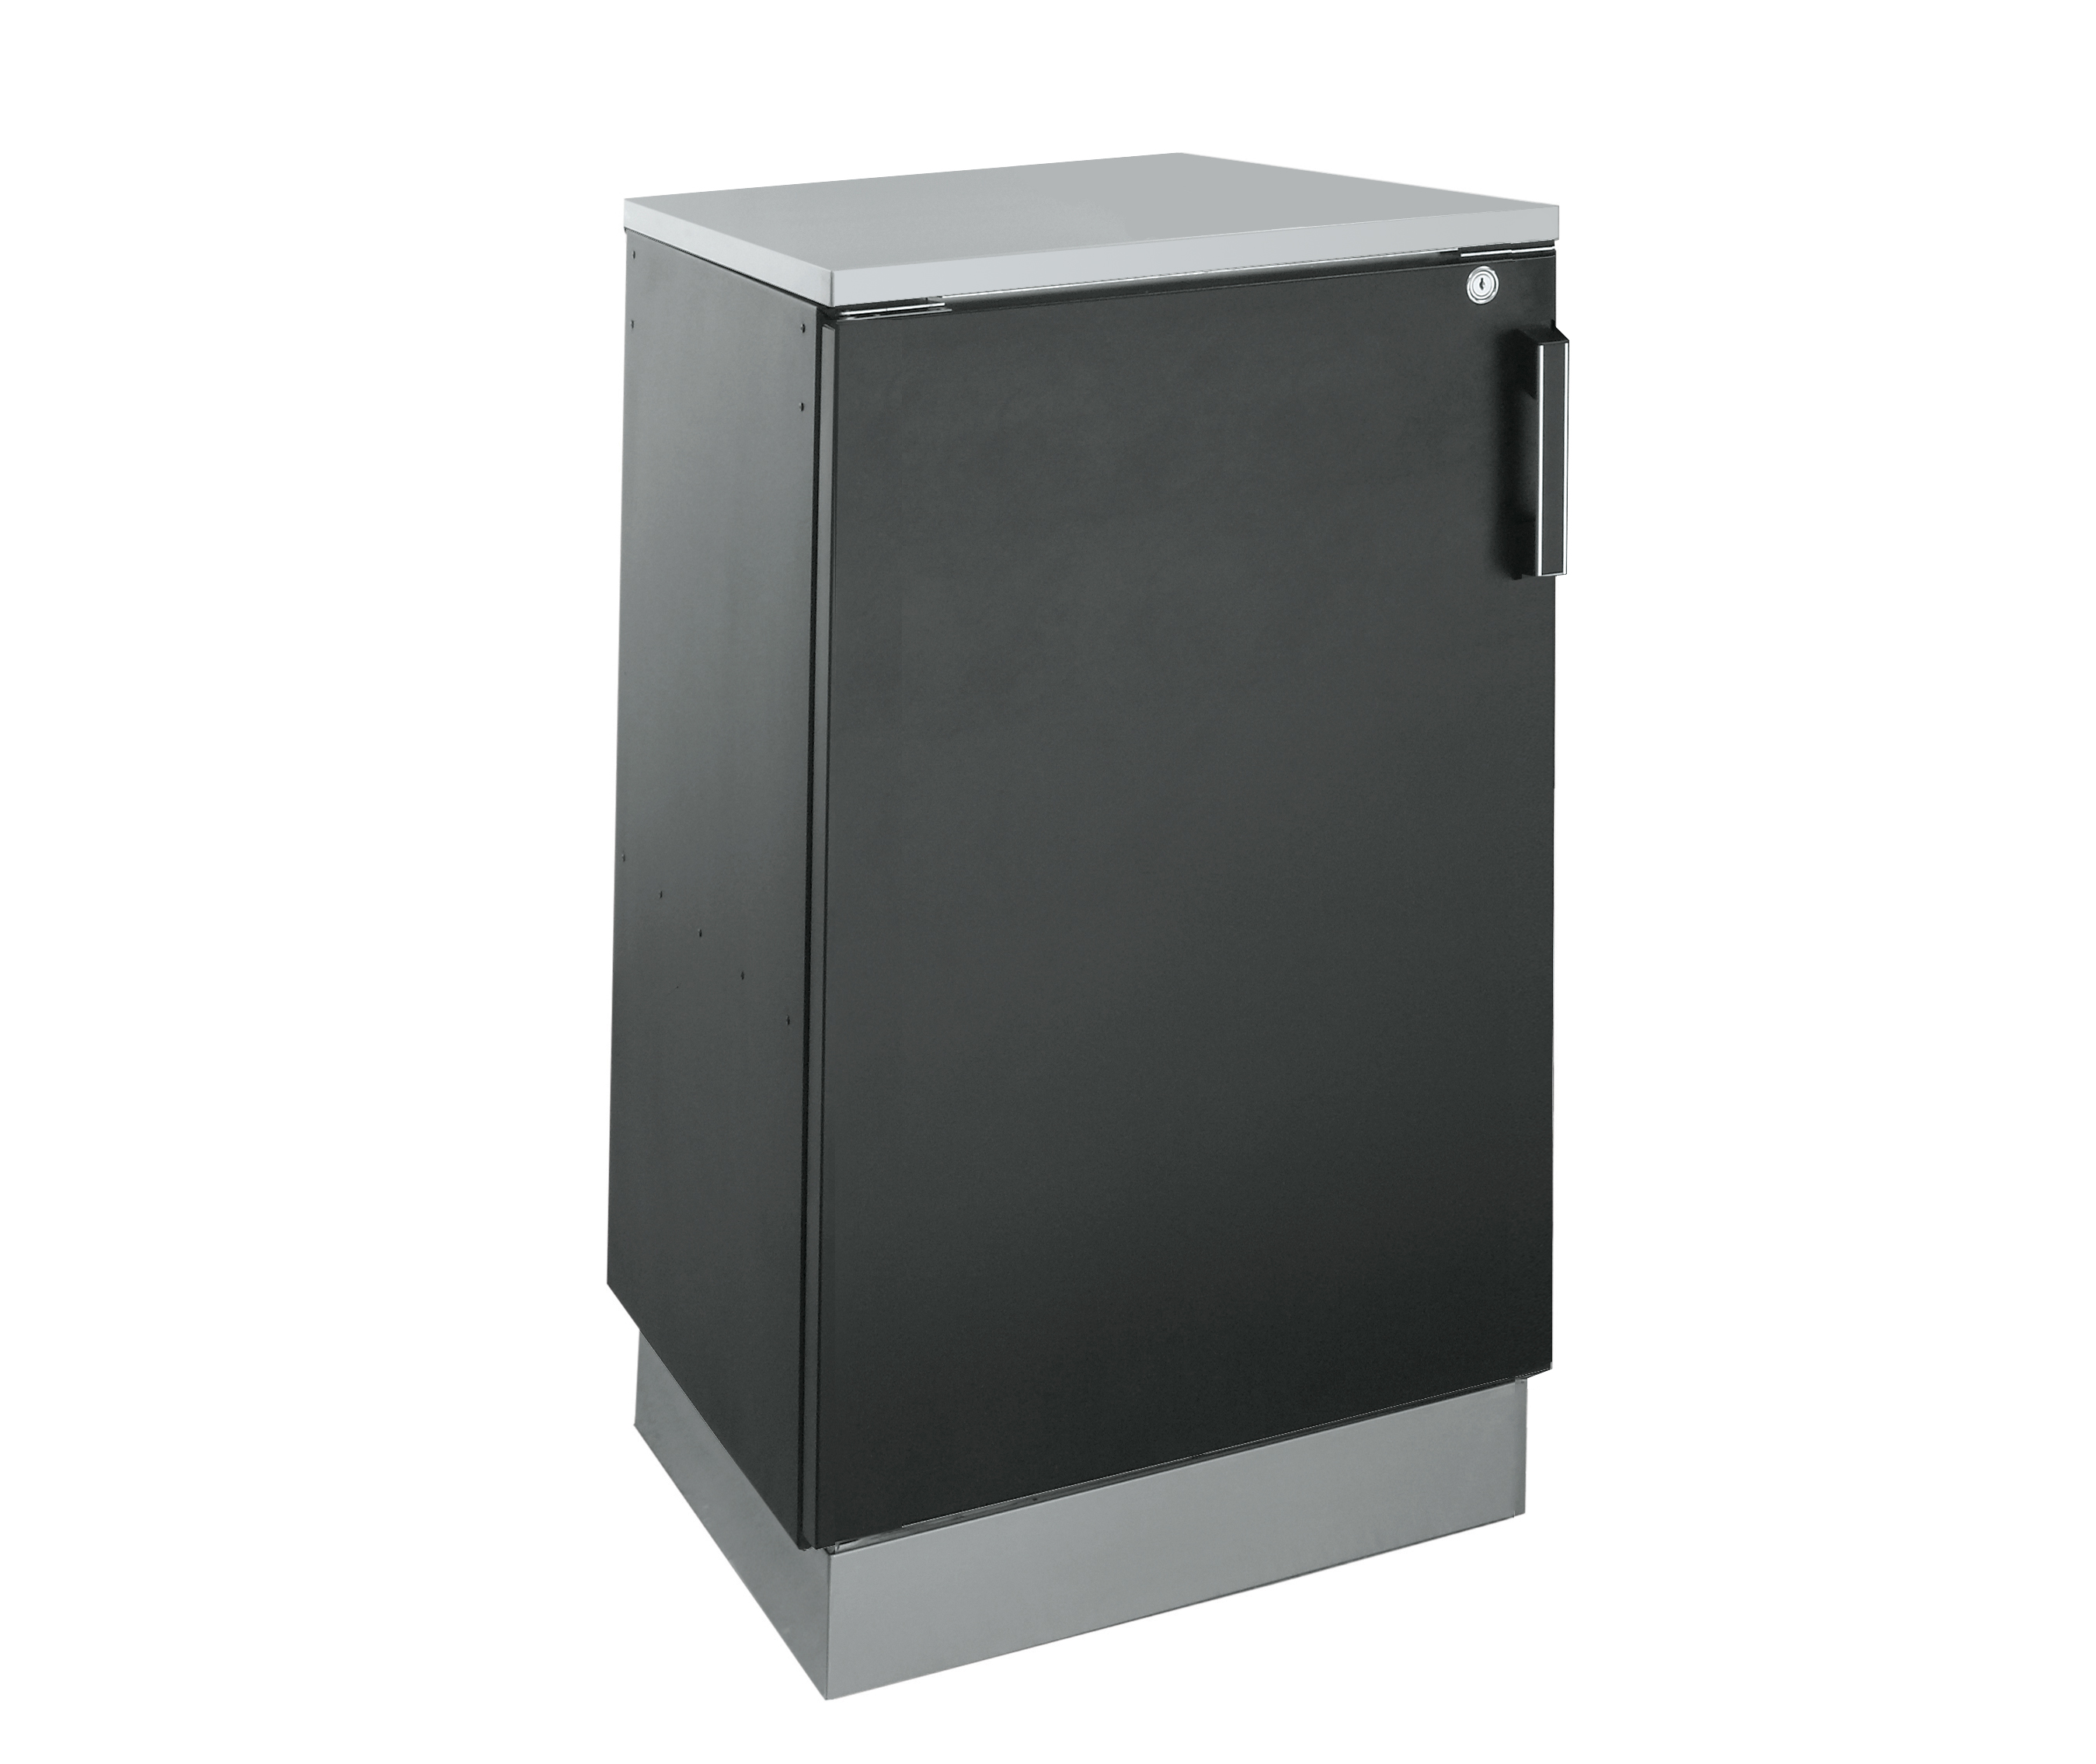 Krowne Metal BD24 back bar cabinet, non-refrigerated